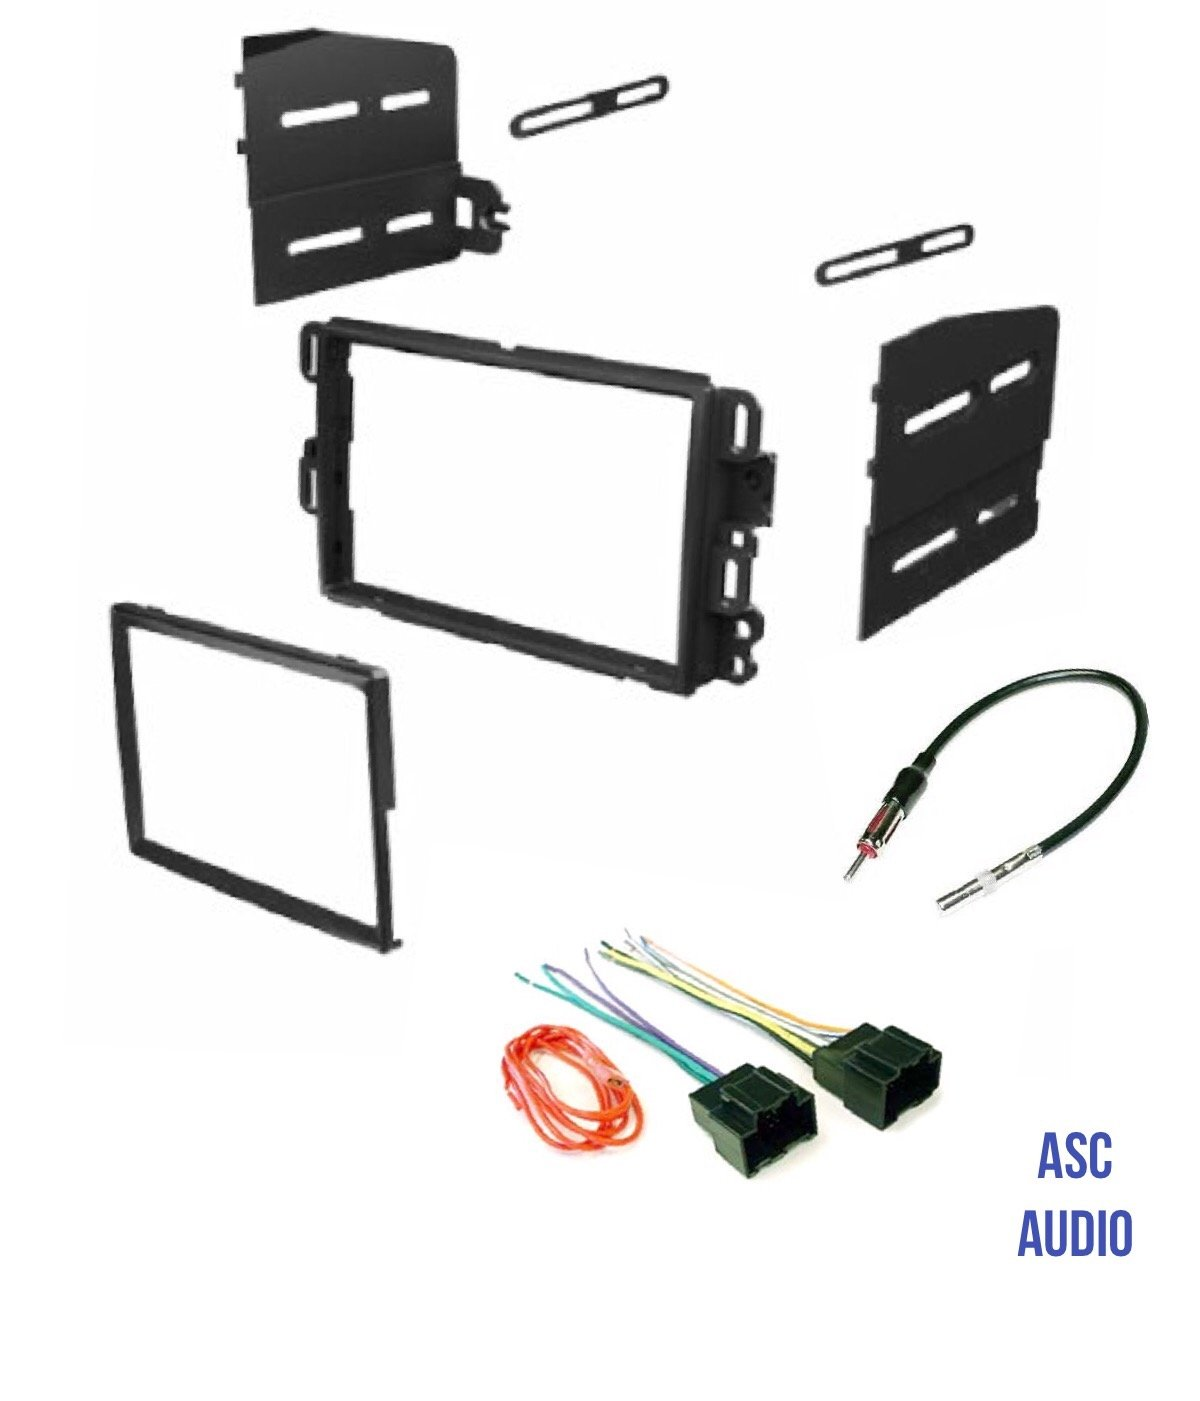 ASC Car Stereo Dash Kit, Wire Harness, and Antenna Adapter Combo to Add a Double Din Radio for some Buick Chevrolet GMC Pontiac Saturn- most 2007-2011 Tahoe, Silverado, Suburban etc.- Listed below by ASC Audio